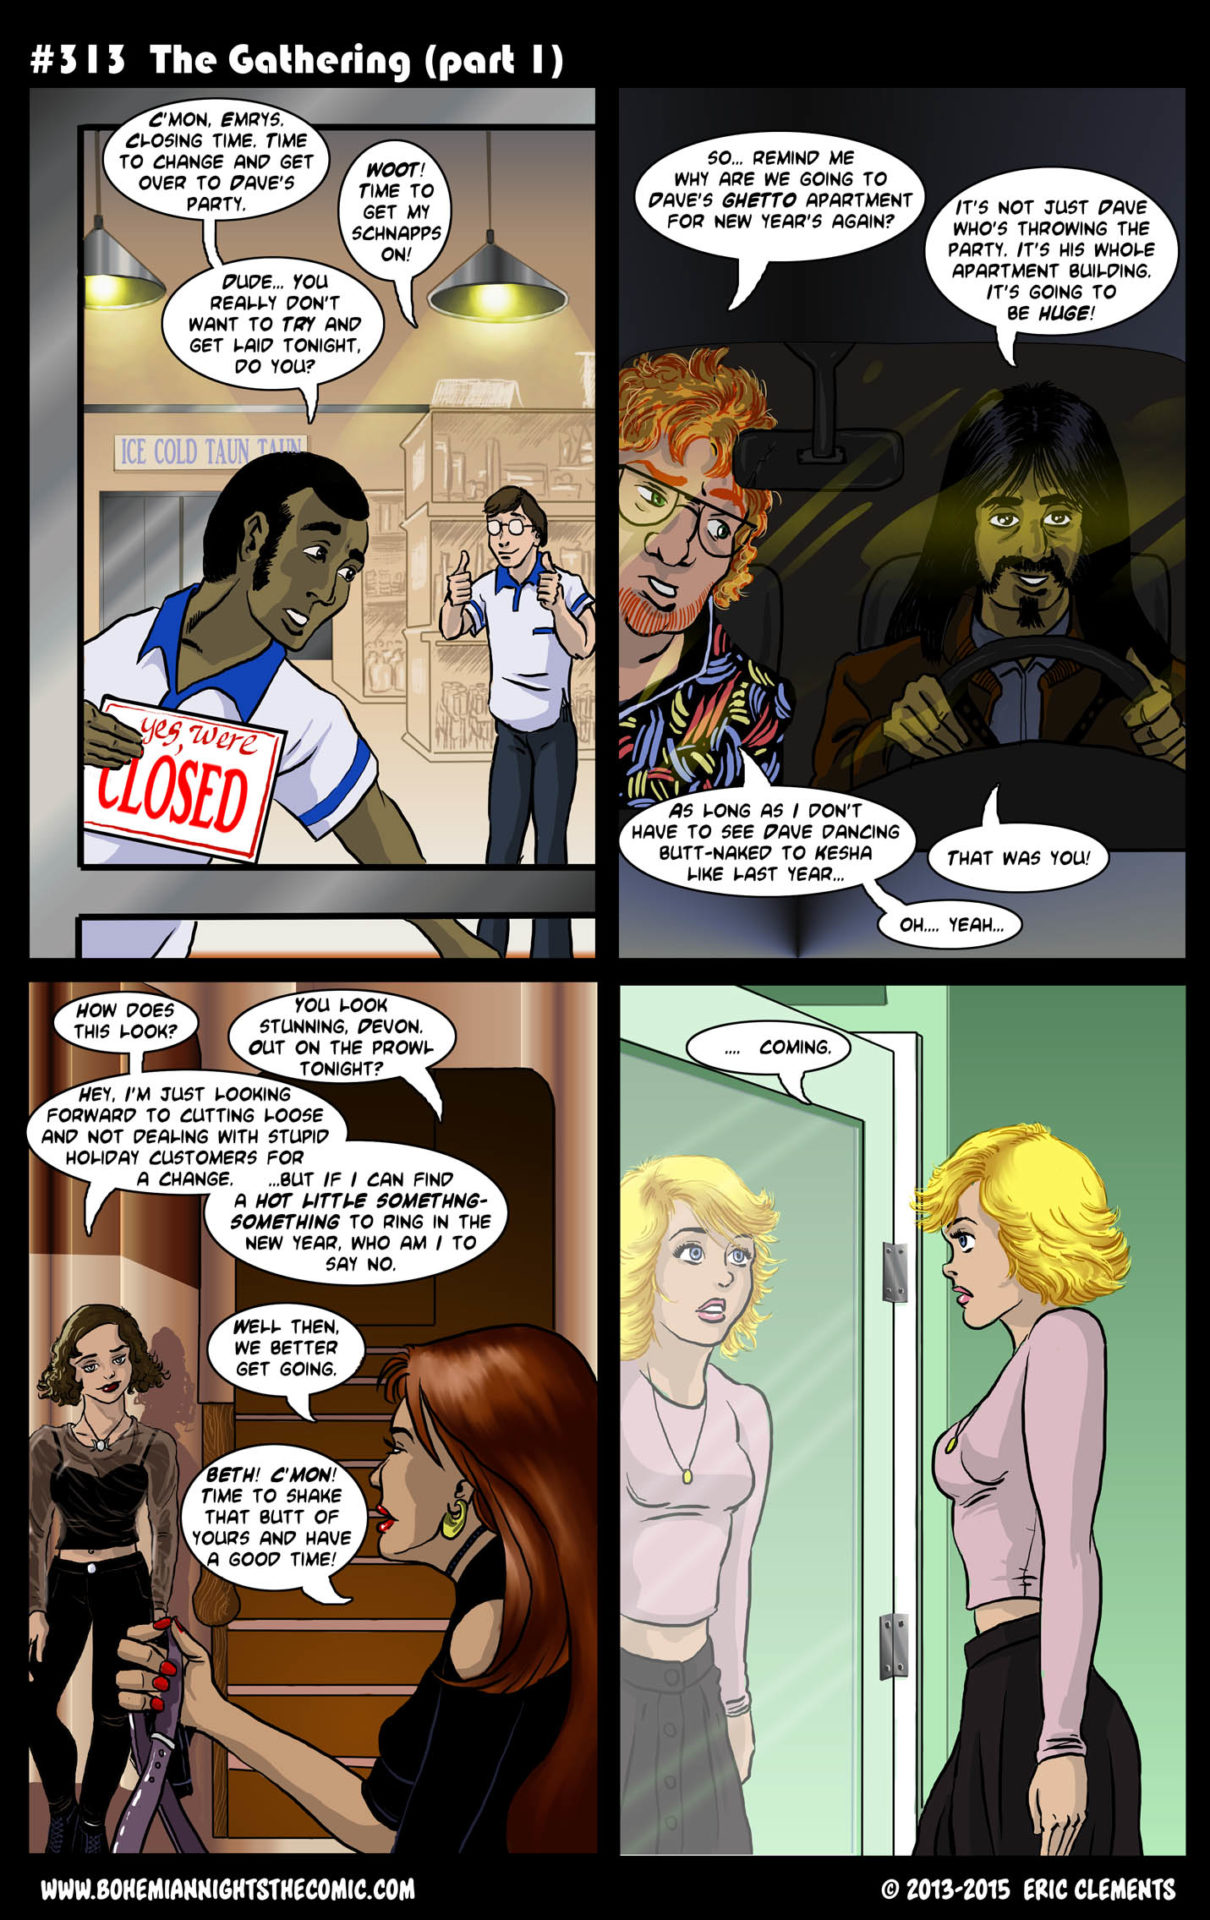 #313 The Gathering – Part 1